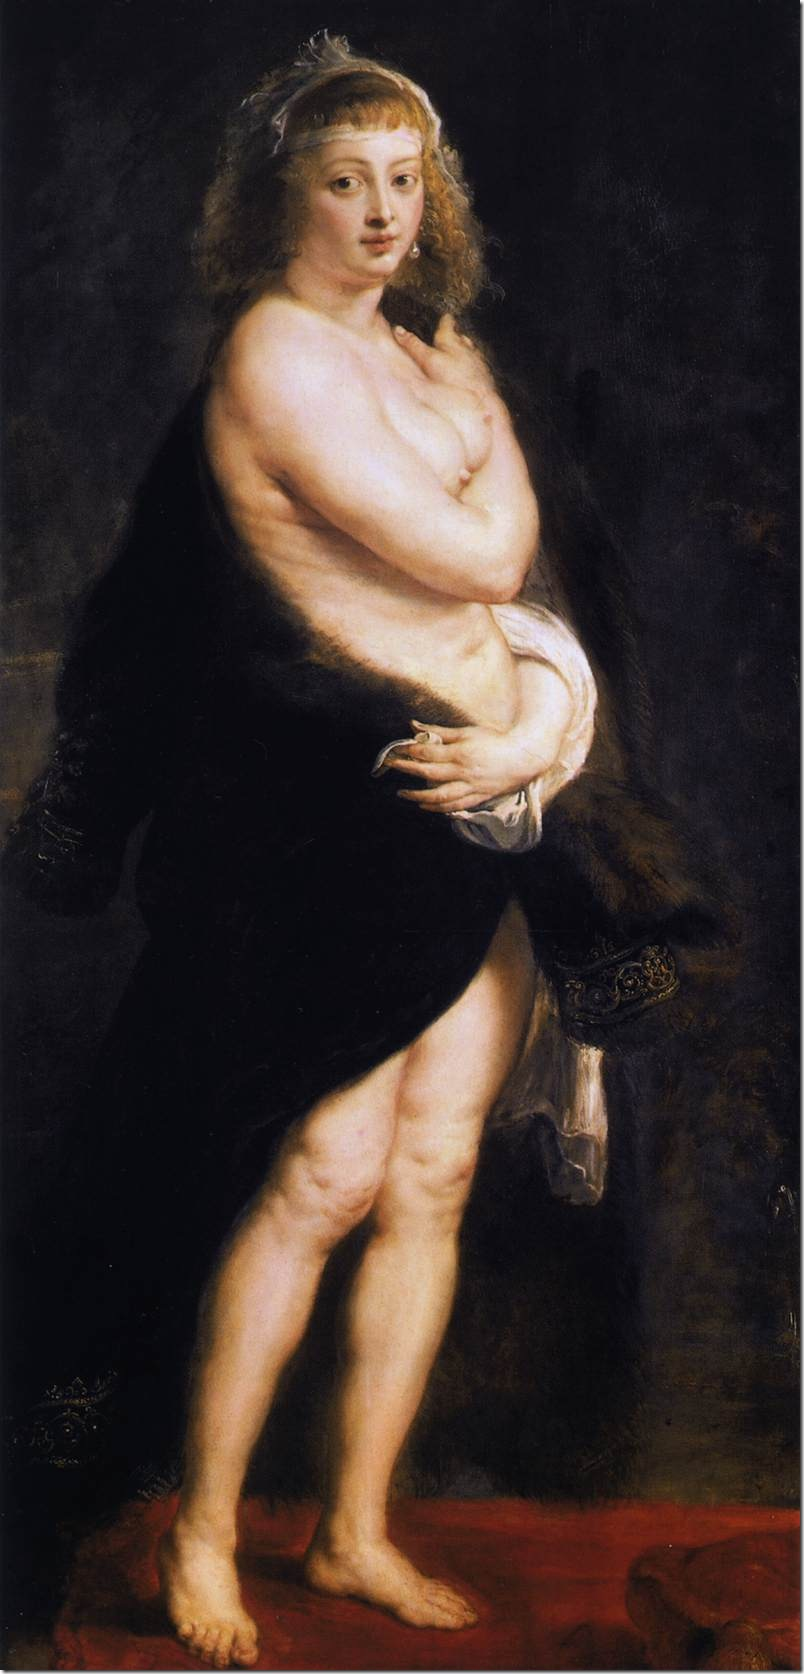 Peter_Paul_Rubens_-_The_Fur_('Het_Pelsken')_-_WGA20386